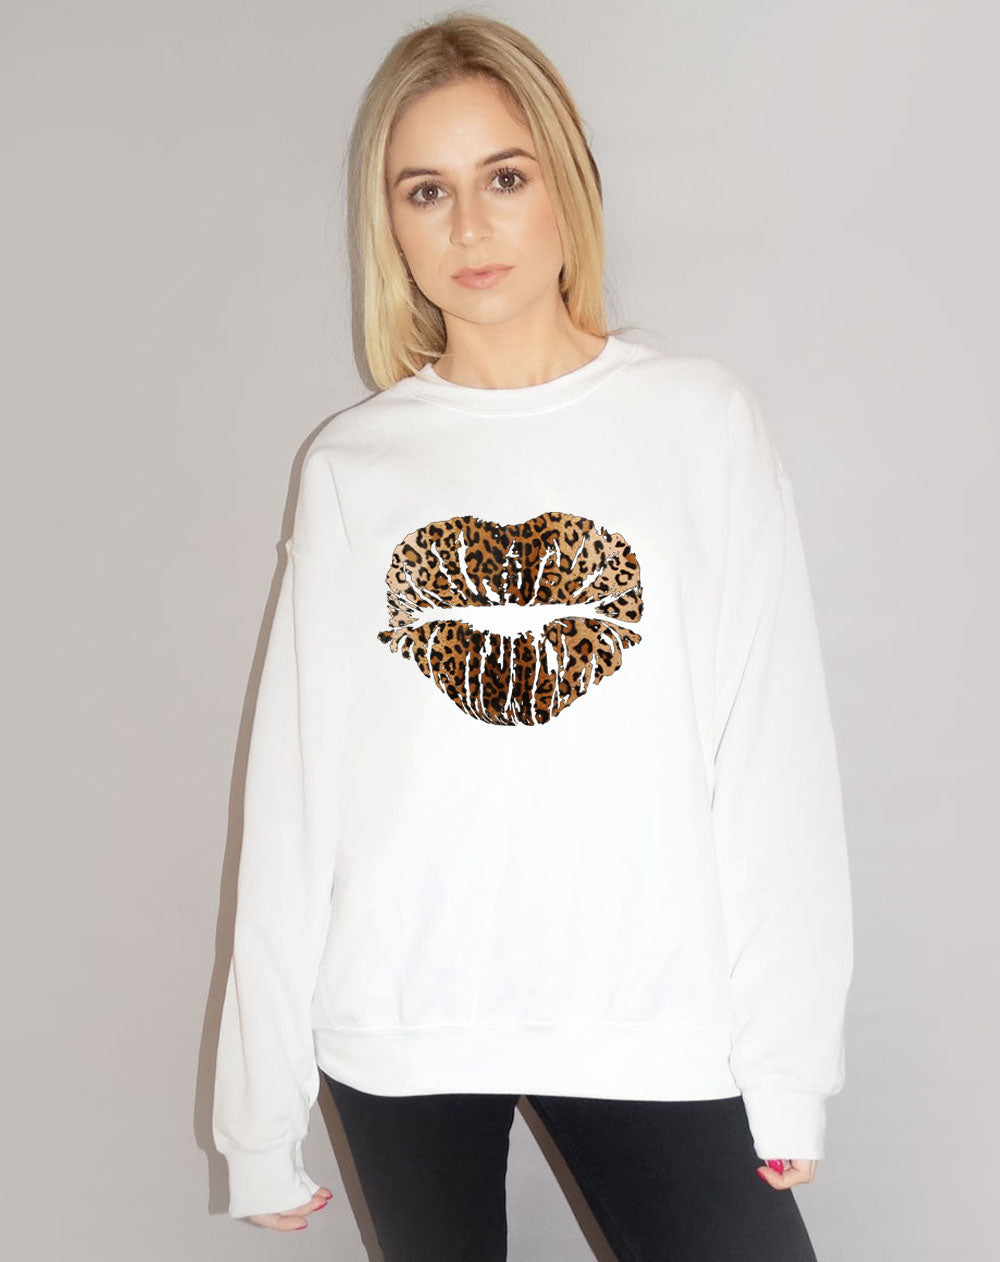 Leopard Lip Kiss Sweatshirt In White